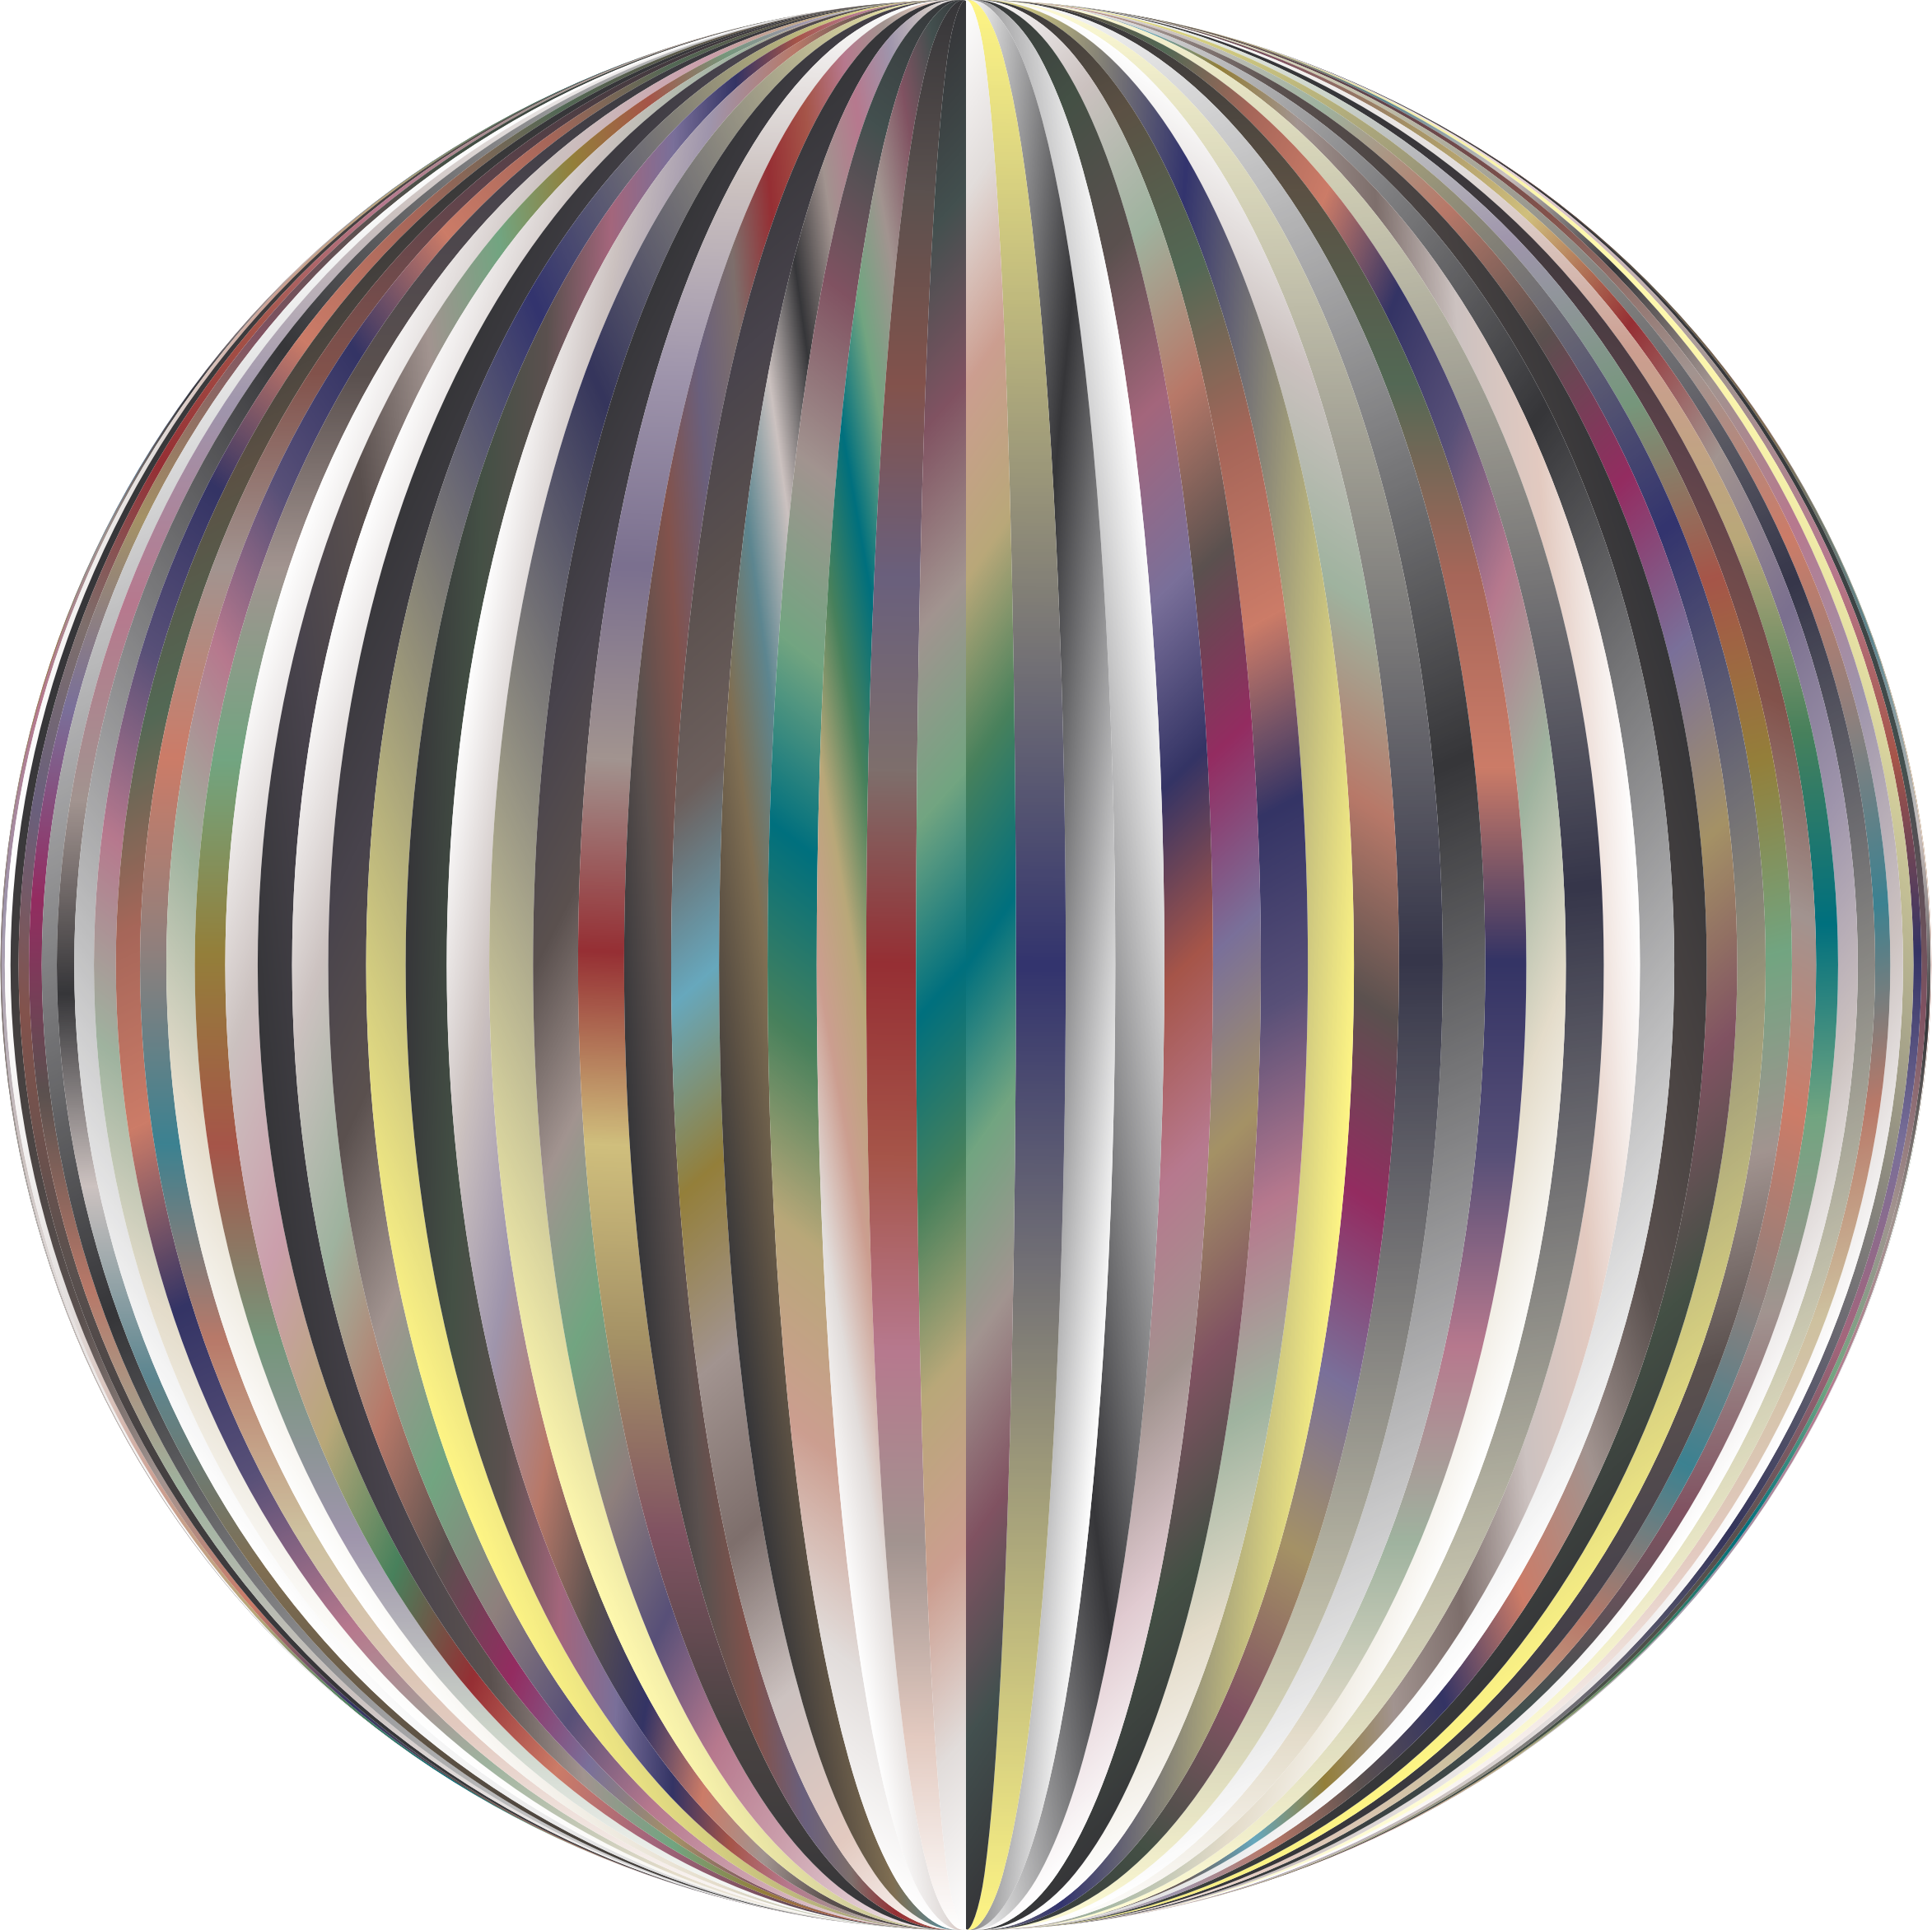 Vibrant Sphere 3 by GDJ